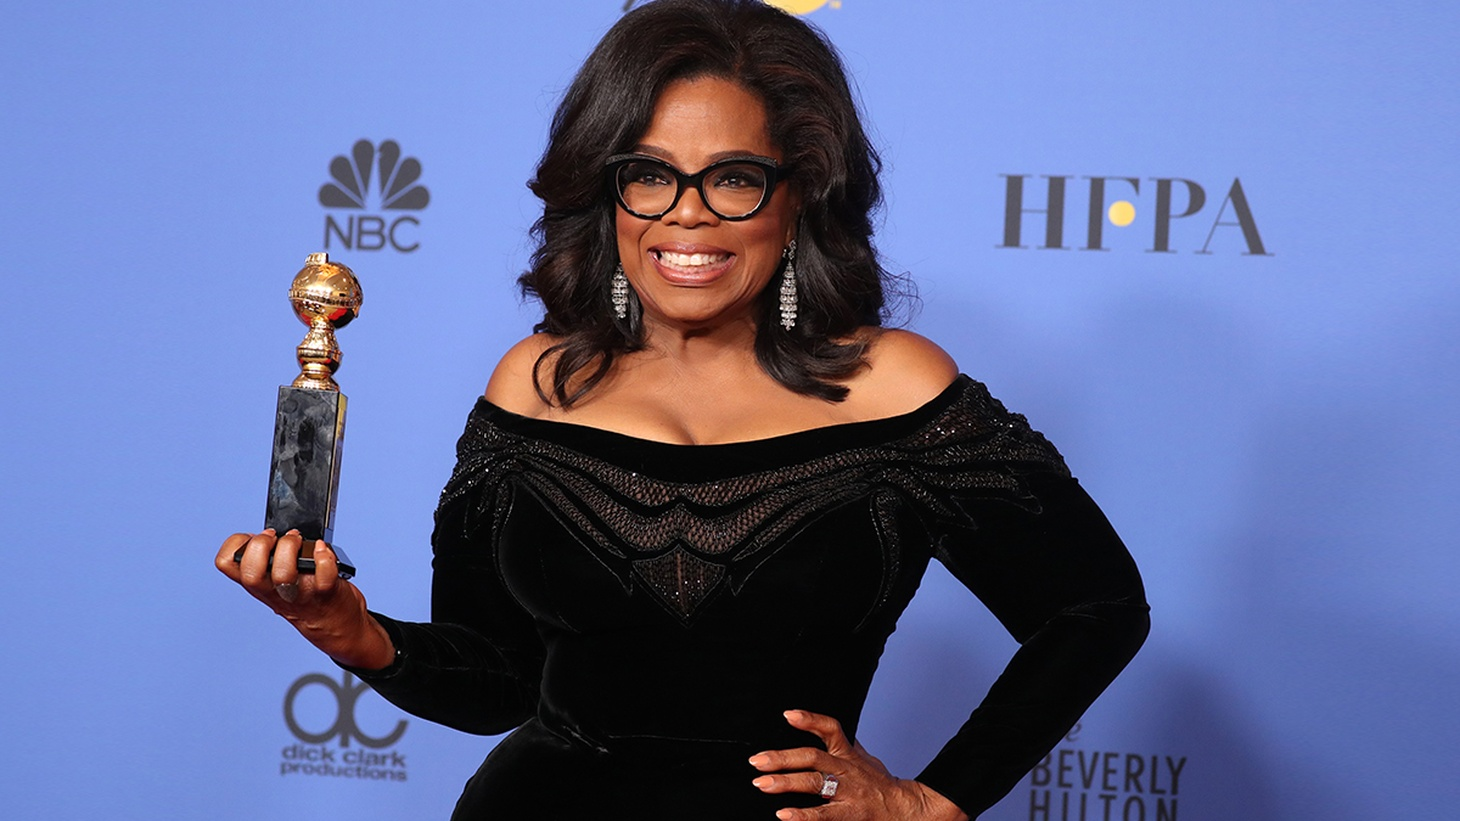 Forget the White House, Oprah should keep her talents in Santa Barbara, which could really use some help.